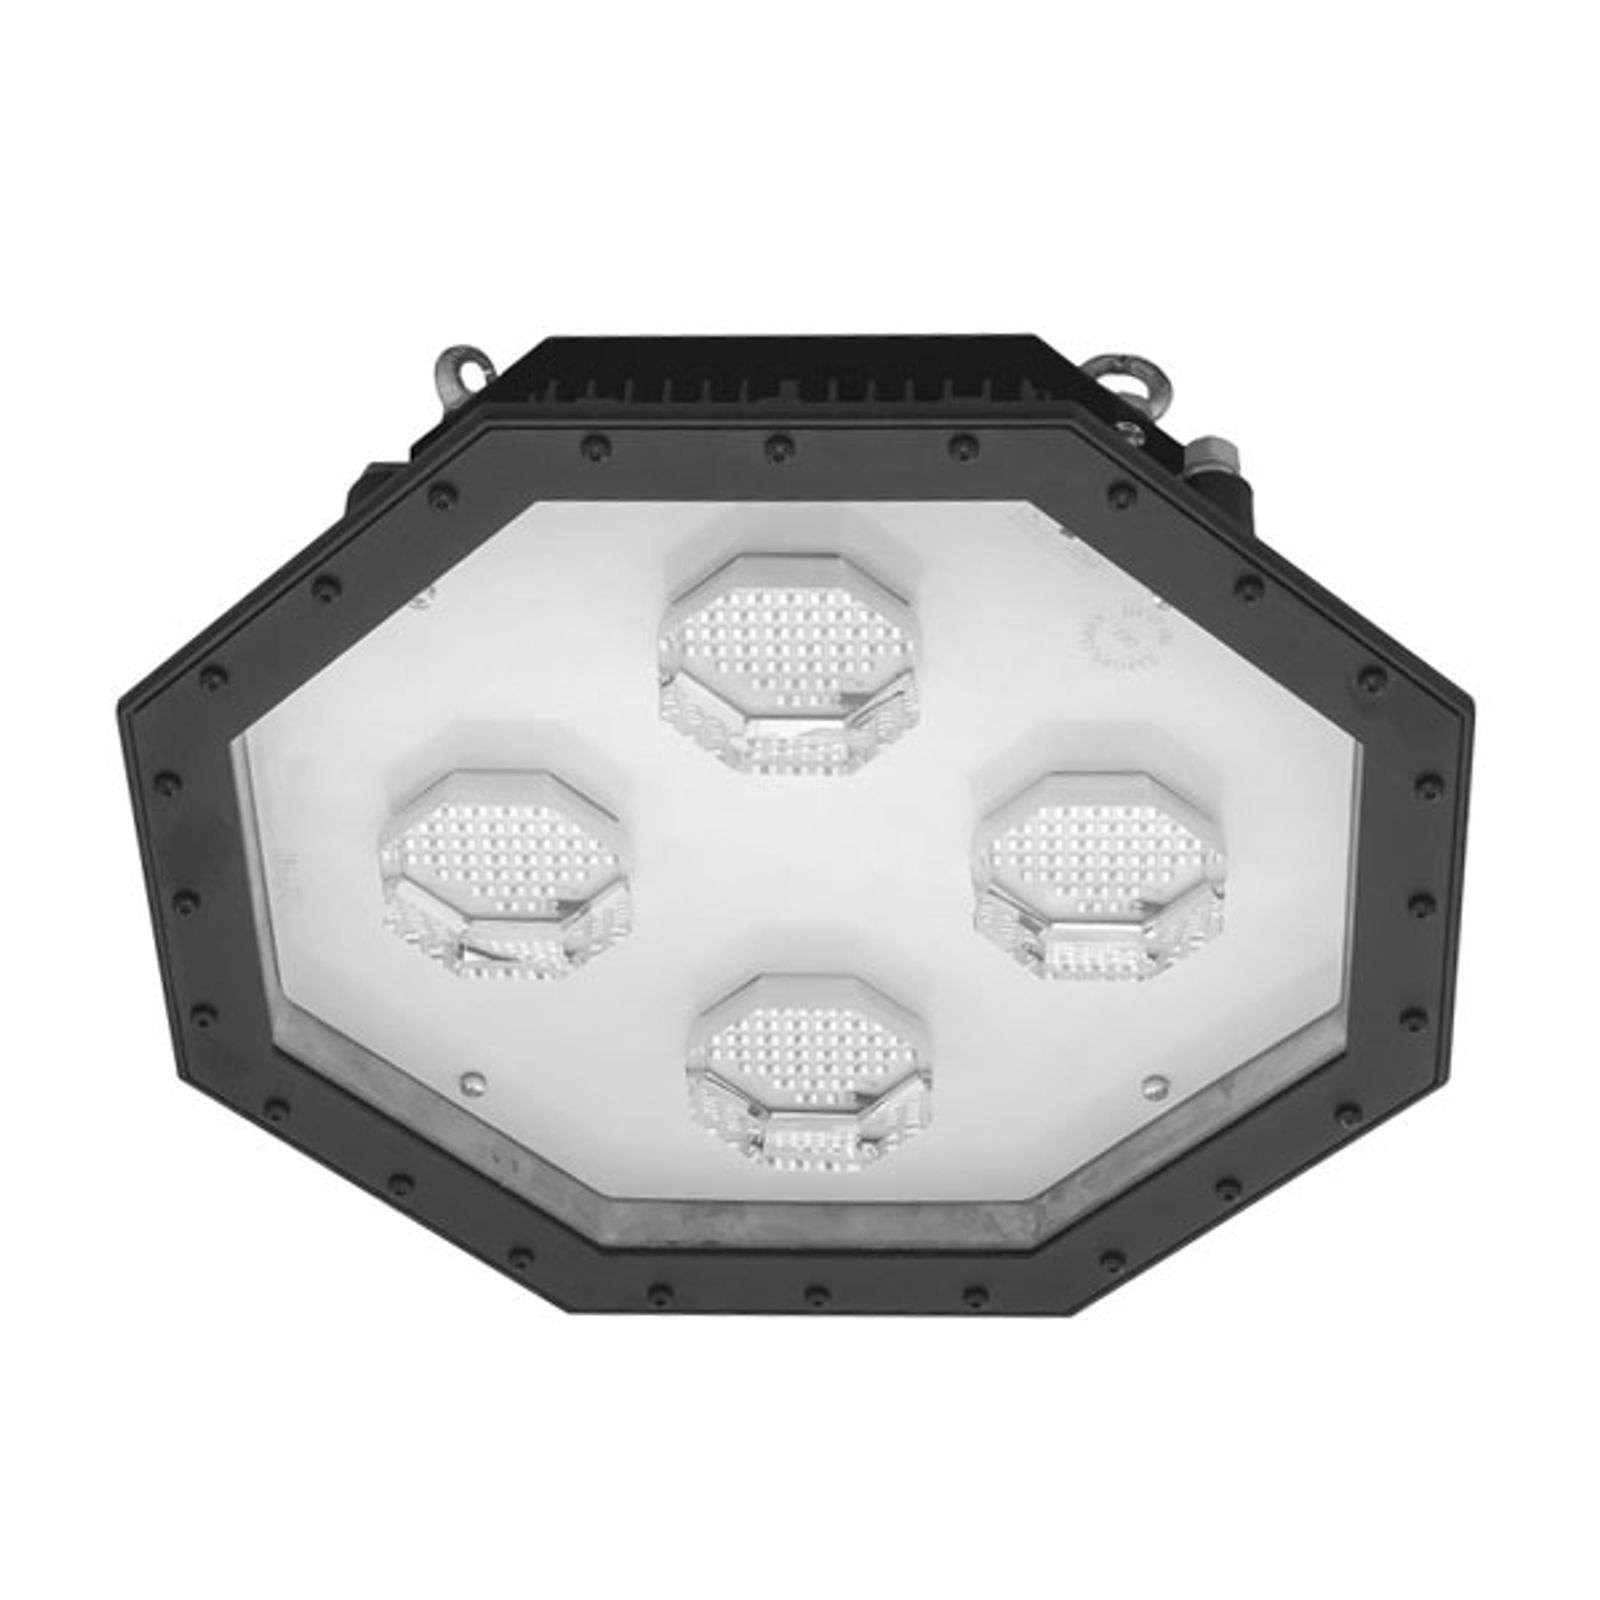 Foco LED para naves Giga octogonal IK10, 175 W